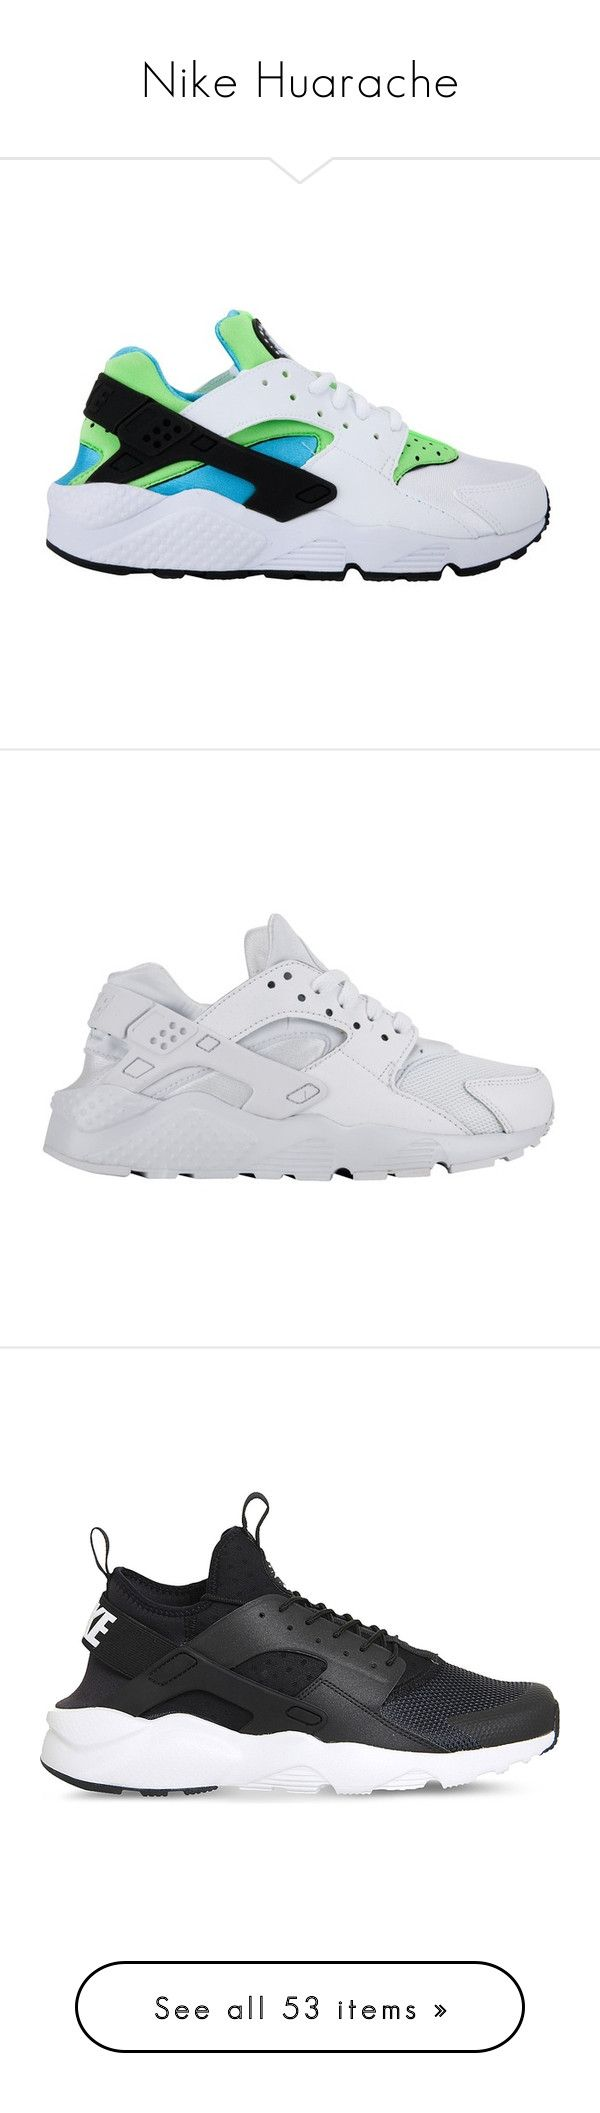 """Nike Huarache"" by aniahrhichkhidd ❤ liked on Polyvore featuring shoes, sneakers, nike, men's fashion, men's shoes, men's sneakers, mens shoes, mens leather shoes, mens leather sneakers and mens sneakers"